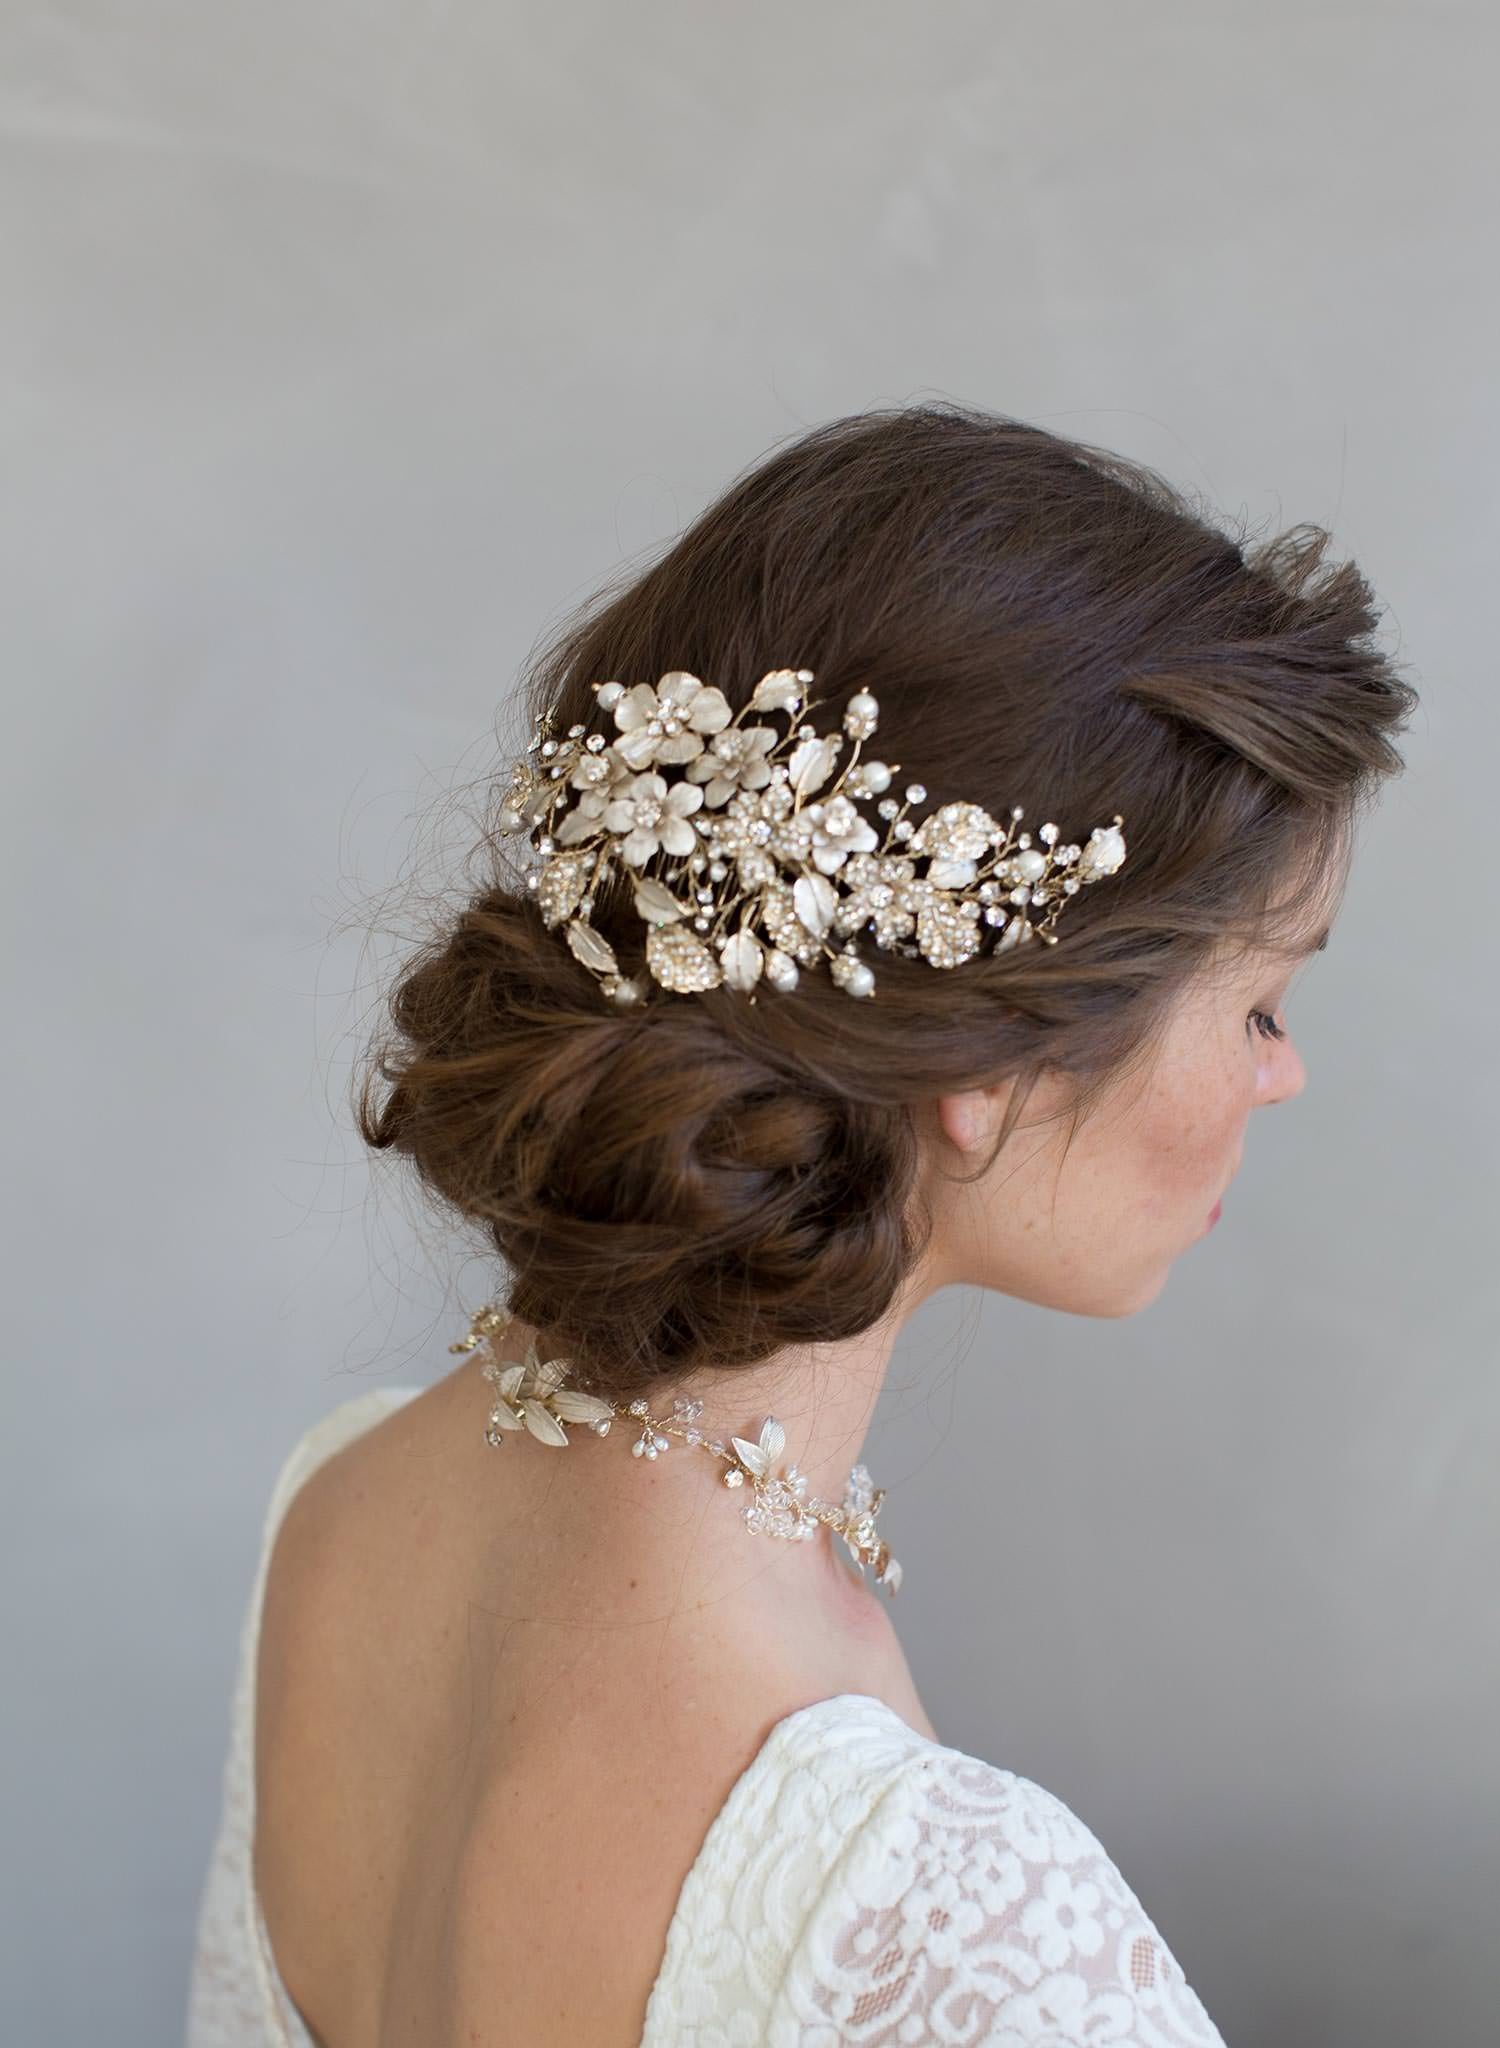 accessories - bridal accessories, sashes, garters | twigs & honey ®, llc